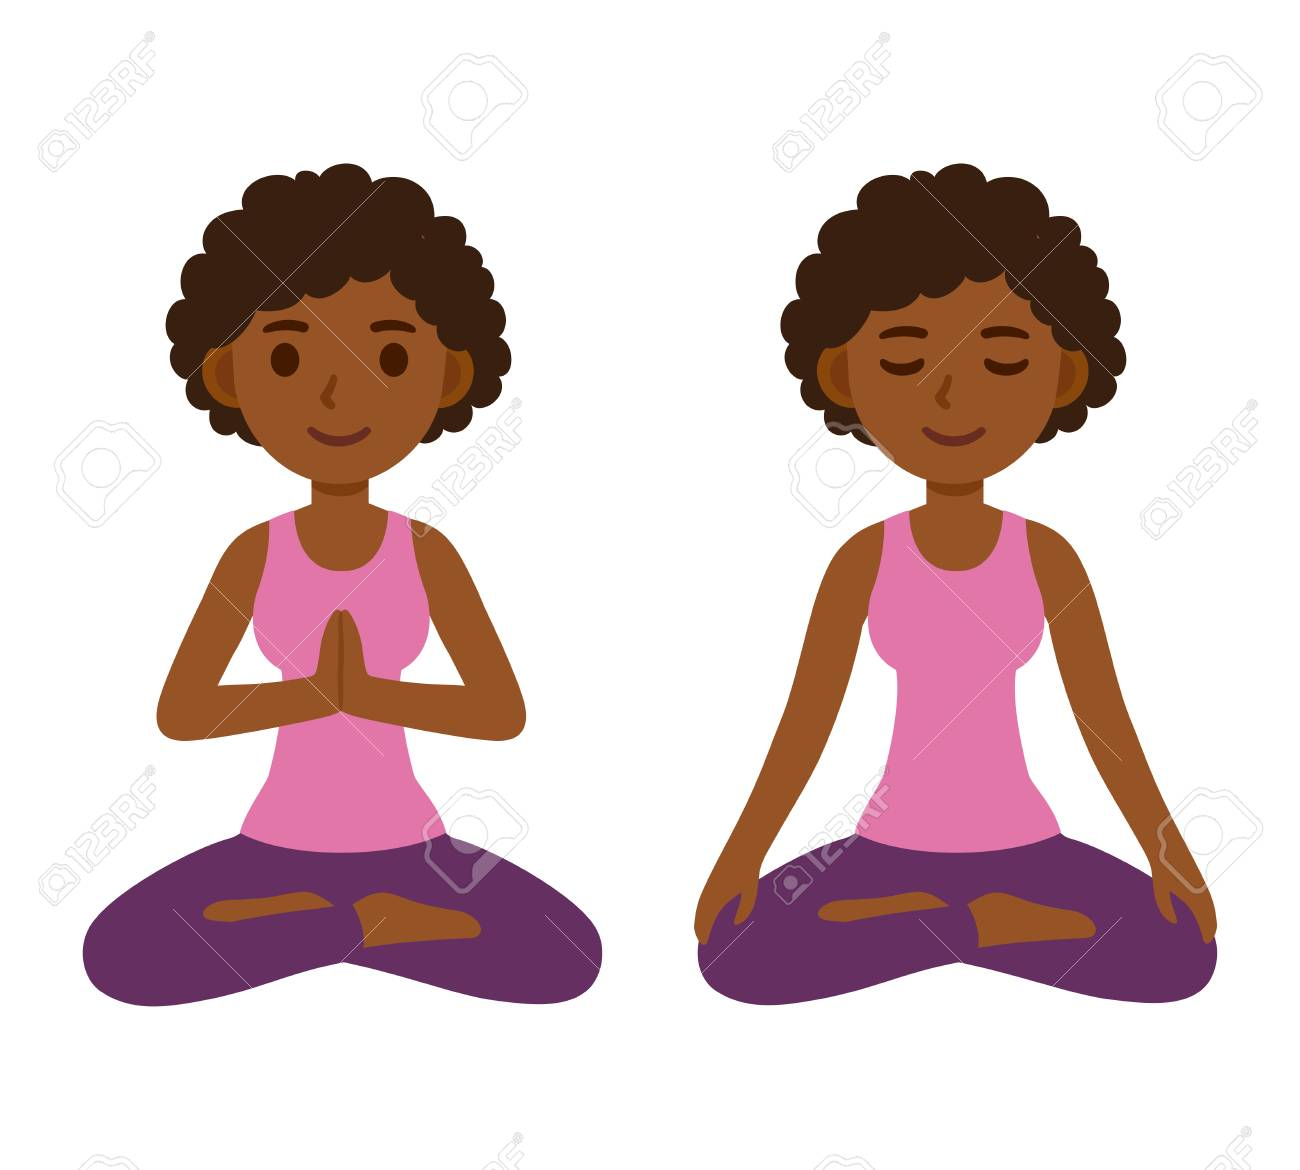 Cute Cartoon Black Girl Doing Yoga And Meditating In Lotus Pose Royalty Free Cliparts Vectors And Stock Illustration Image 125668100